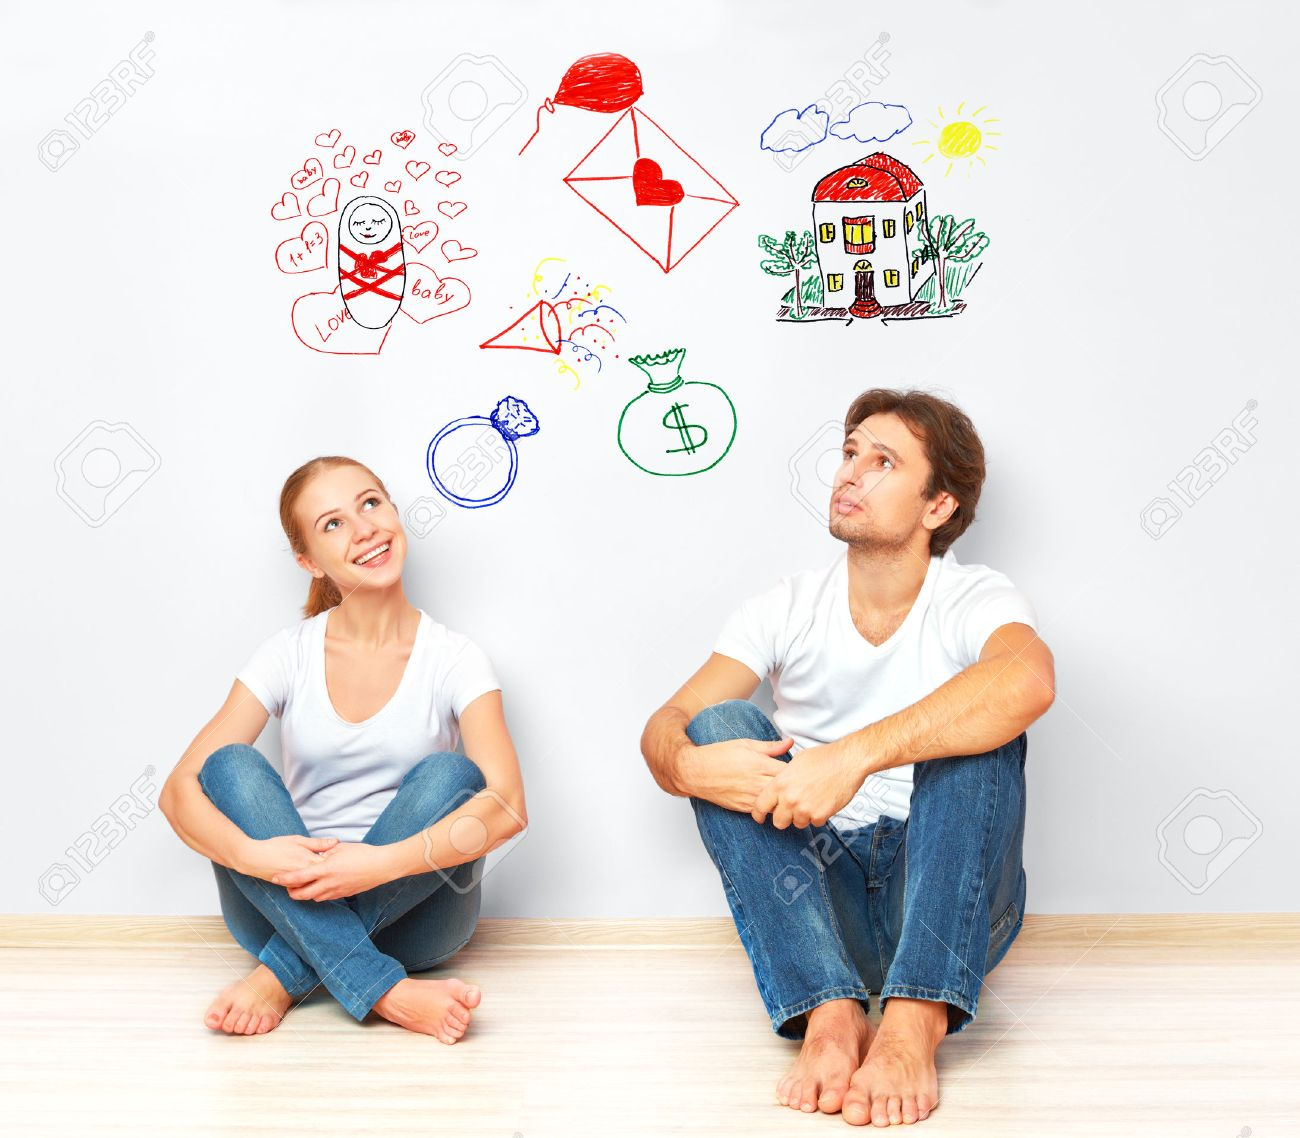 http://previews.123rf.com/images/evgenyatamanenko/evgenyatamanenko1501/evgenyatamanenko150100004/35114988-concept-young-happy-family-couple-dreaming-of-new-house-child-financial-well-being-Stock-Photo.jpg